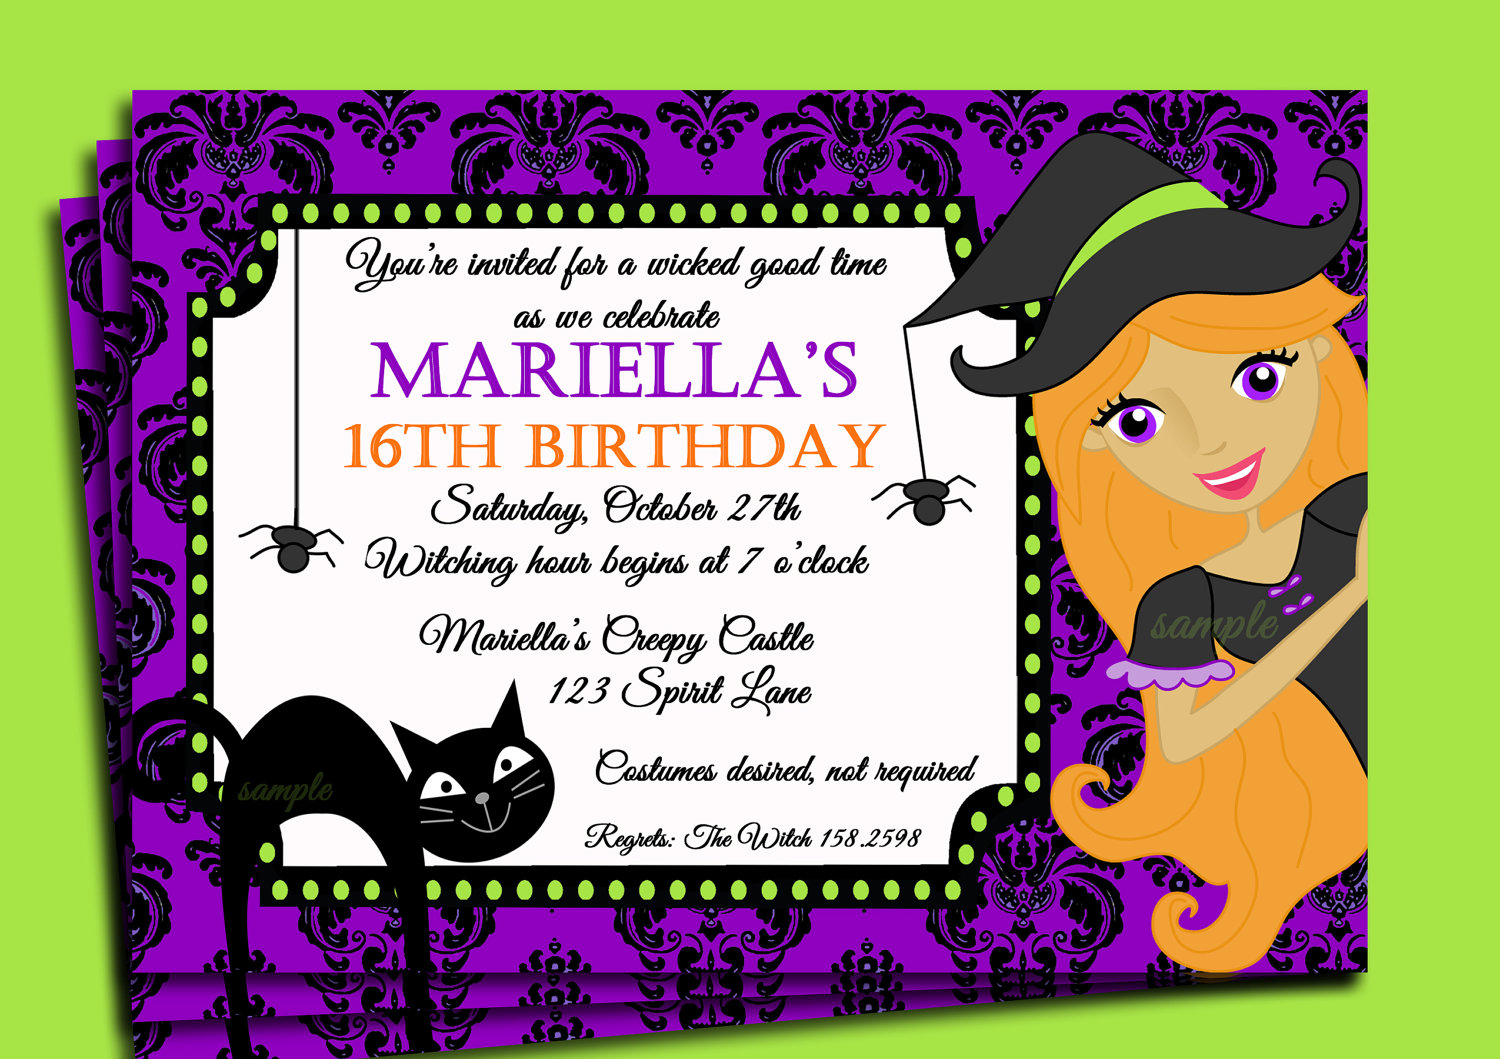 Halloween birthday party invitation wording dolanpedia halloween stopboris Image collections